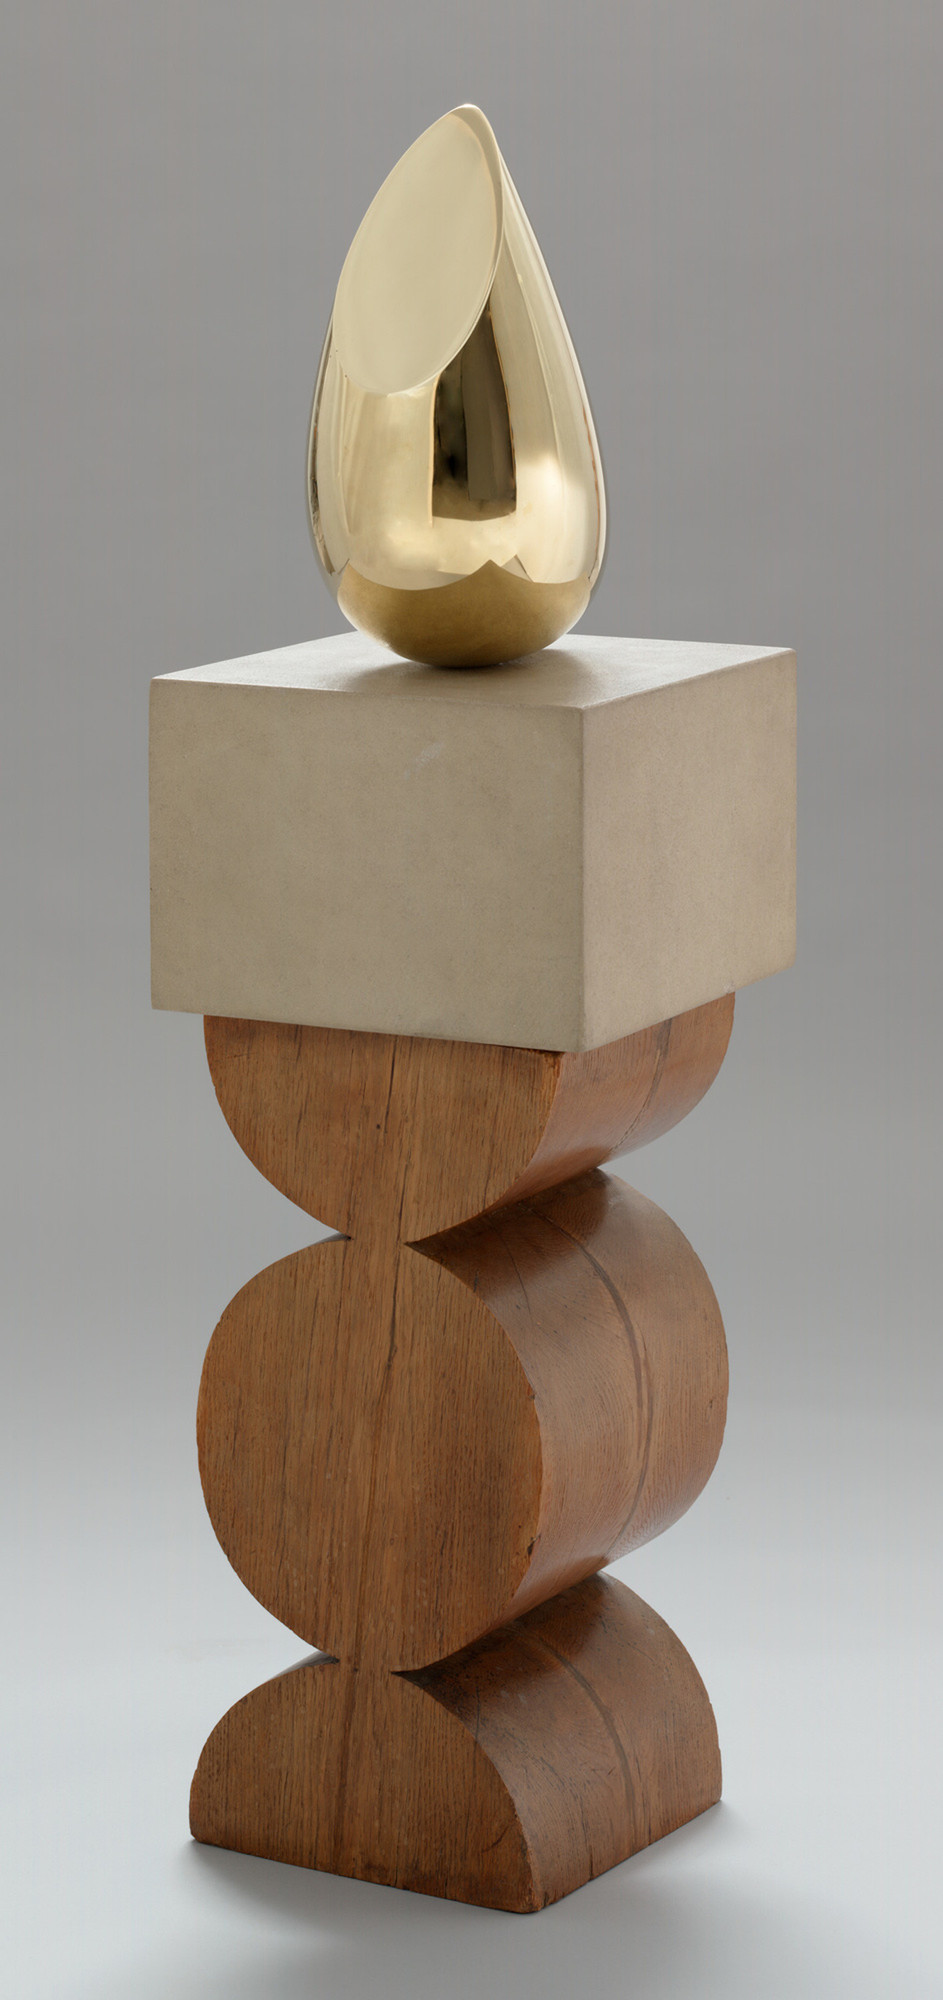 "Constantin Brancusi. Young Bird. 1928. Bronze, 16 x 8 1/4 x 12"" (40.5 x 21 x 30.4 cm), on a two-part pedestal of limestone, 9 1/4"" (23.5 cm) high, and oak, 23 3/4"" (60.3 cm) high (carved by the artist), 16 × 8 1/4 × 12"" (40.6 × 21 × 30.5 cm); other (stone): 9 1/4"" (23.5 cm); pedestal (overall): 36 × 13 1/2 × 14"" (91.4 × 34.3 × 35.6 cm). Gift of Mr. and Mrs. William A. M. Burden. © Succession Brancusi - All rights reserved (ARS) 2018"